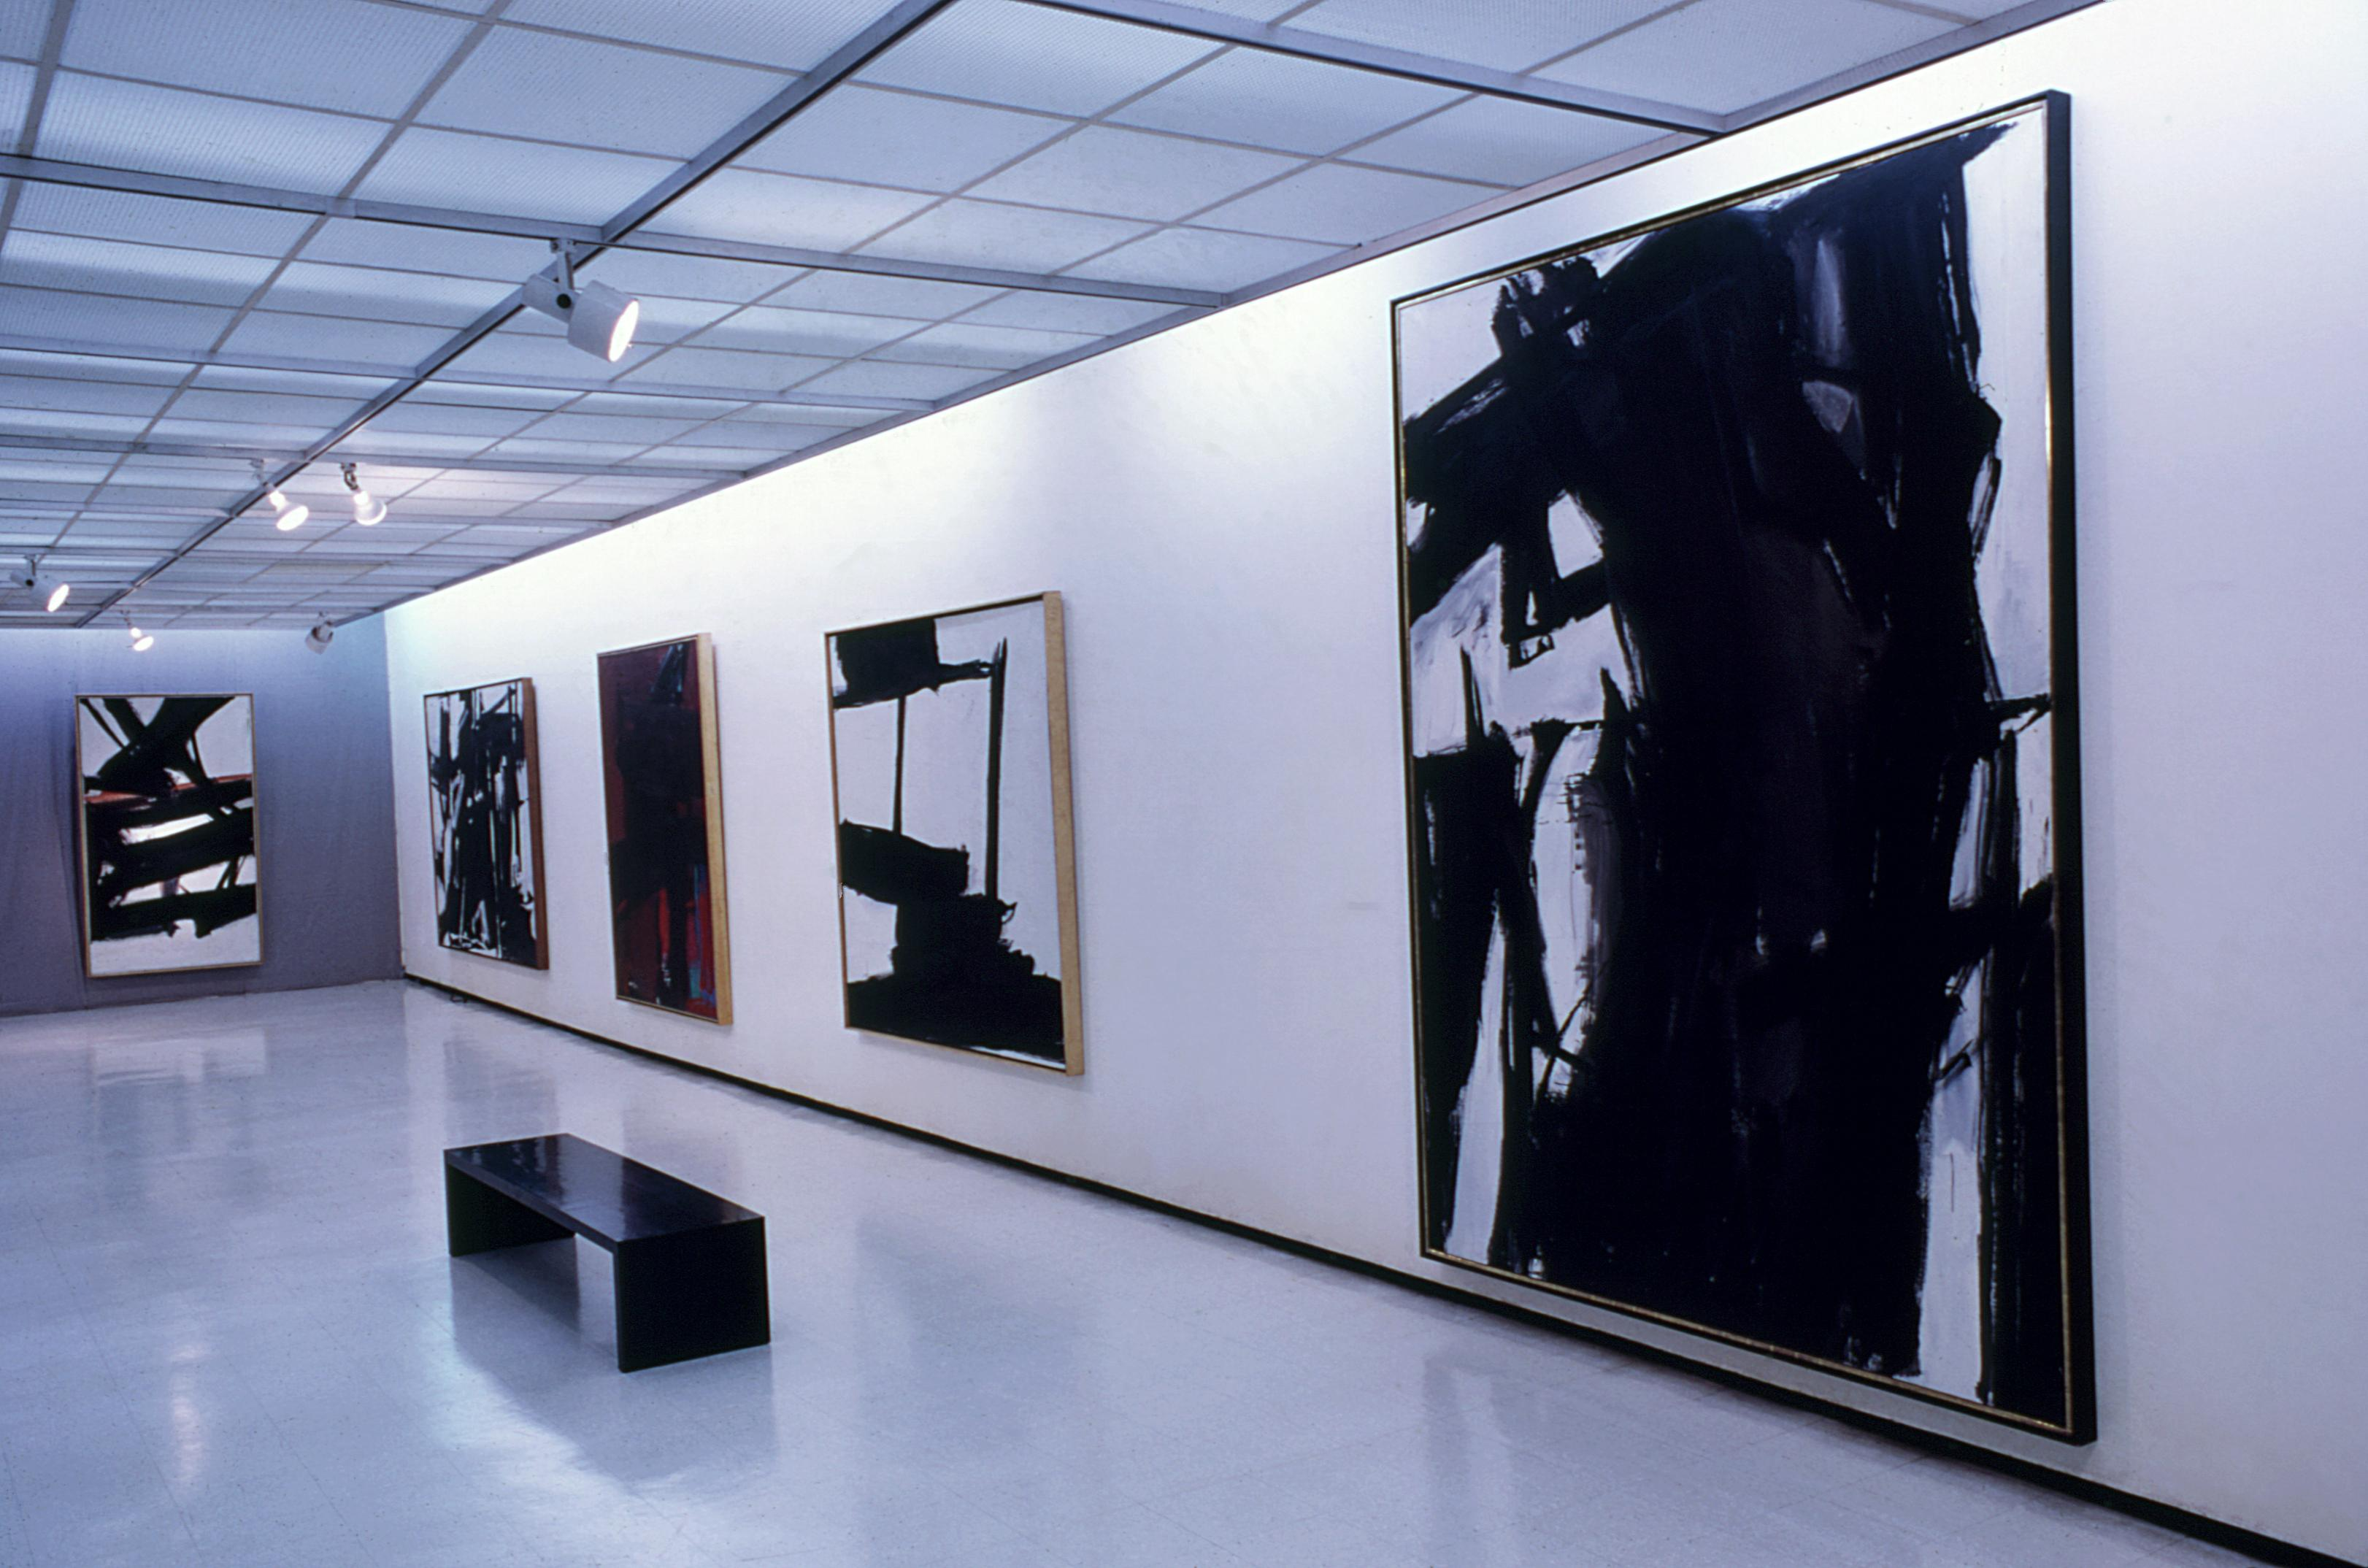 Five large paintings, predominately black and white, hang along a gallery wall.